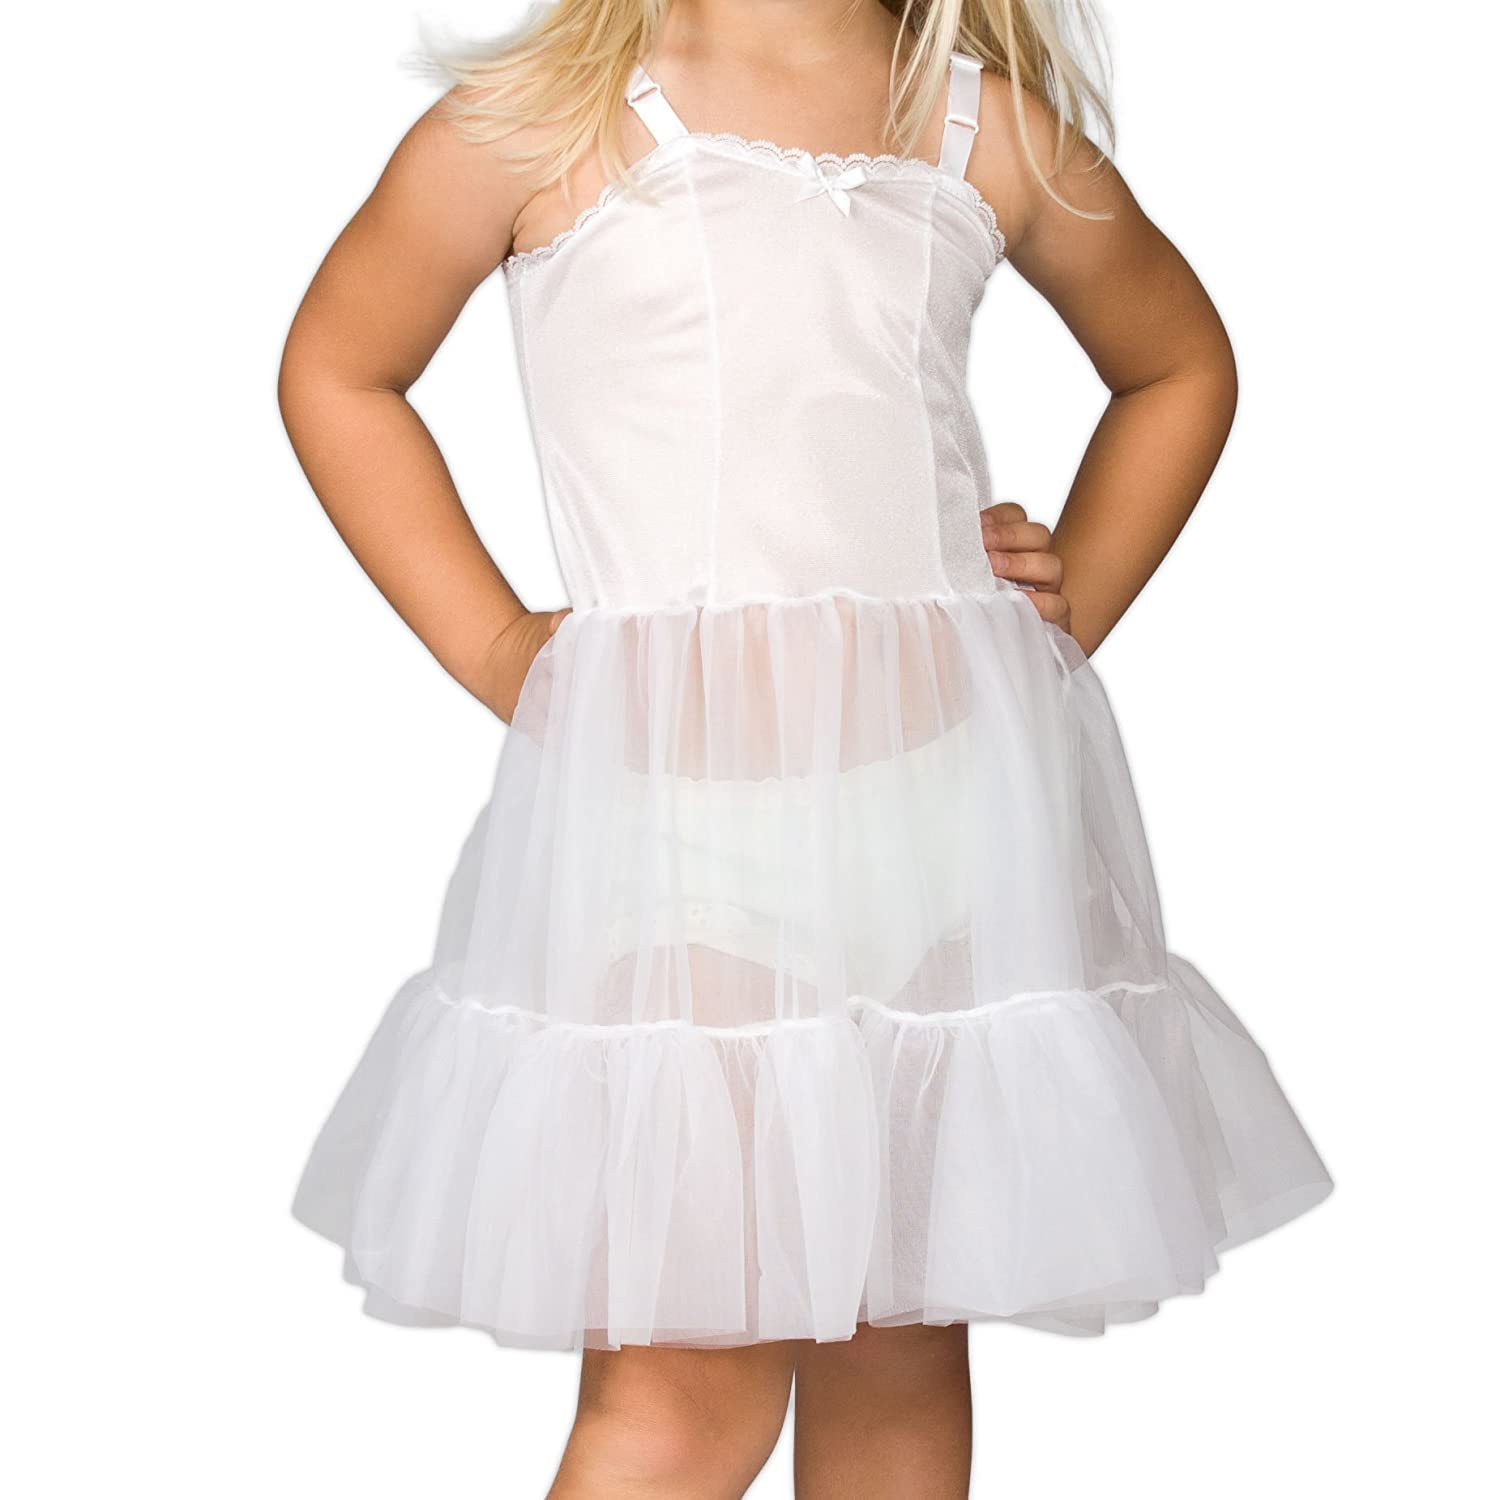 I.C. Collections Little Girls White Bouffant Sweetheart Slip Petticoat, 2T New ICM 000320-WHB